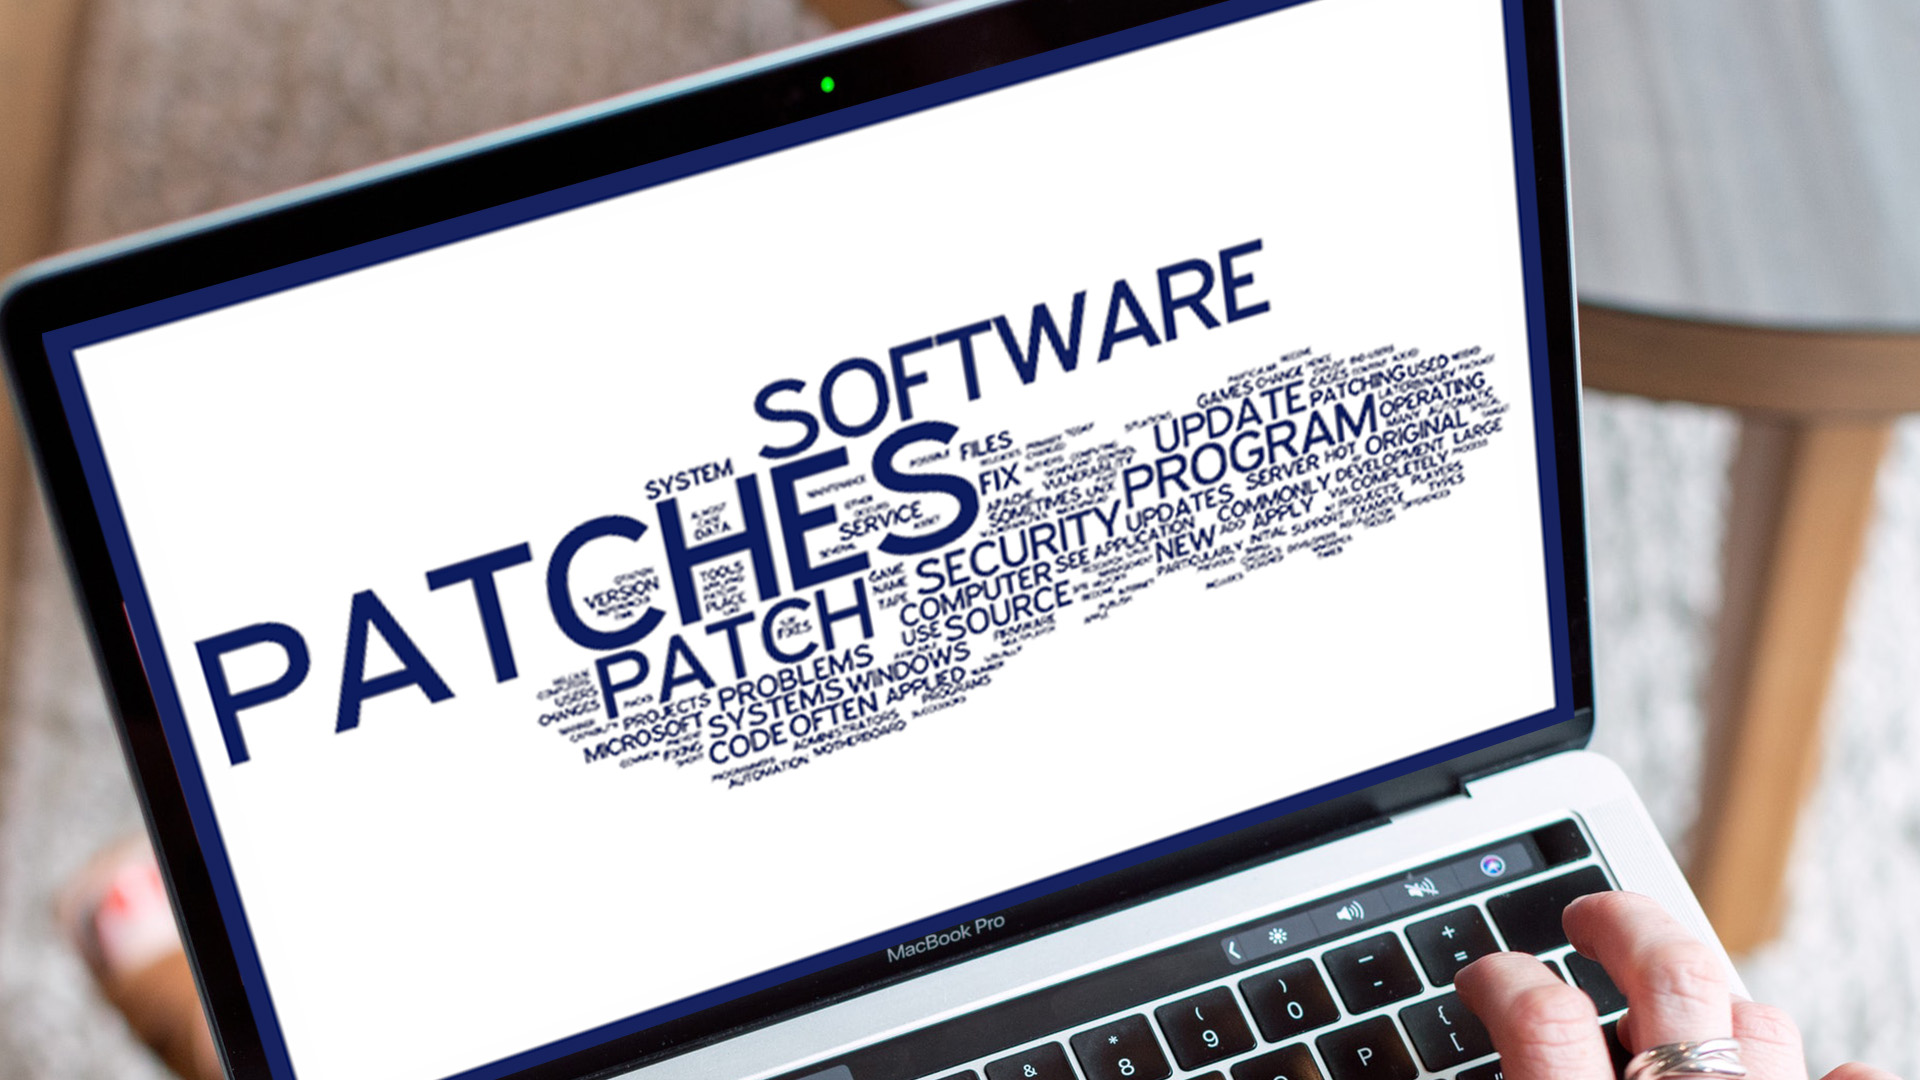 Too many software patches spoil the workers' punctuality